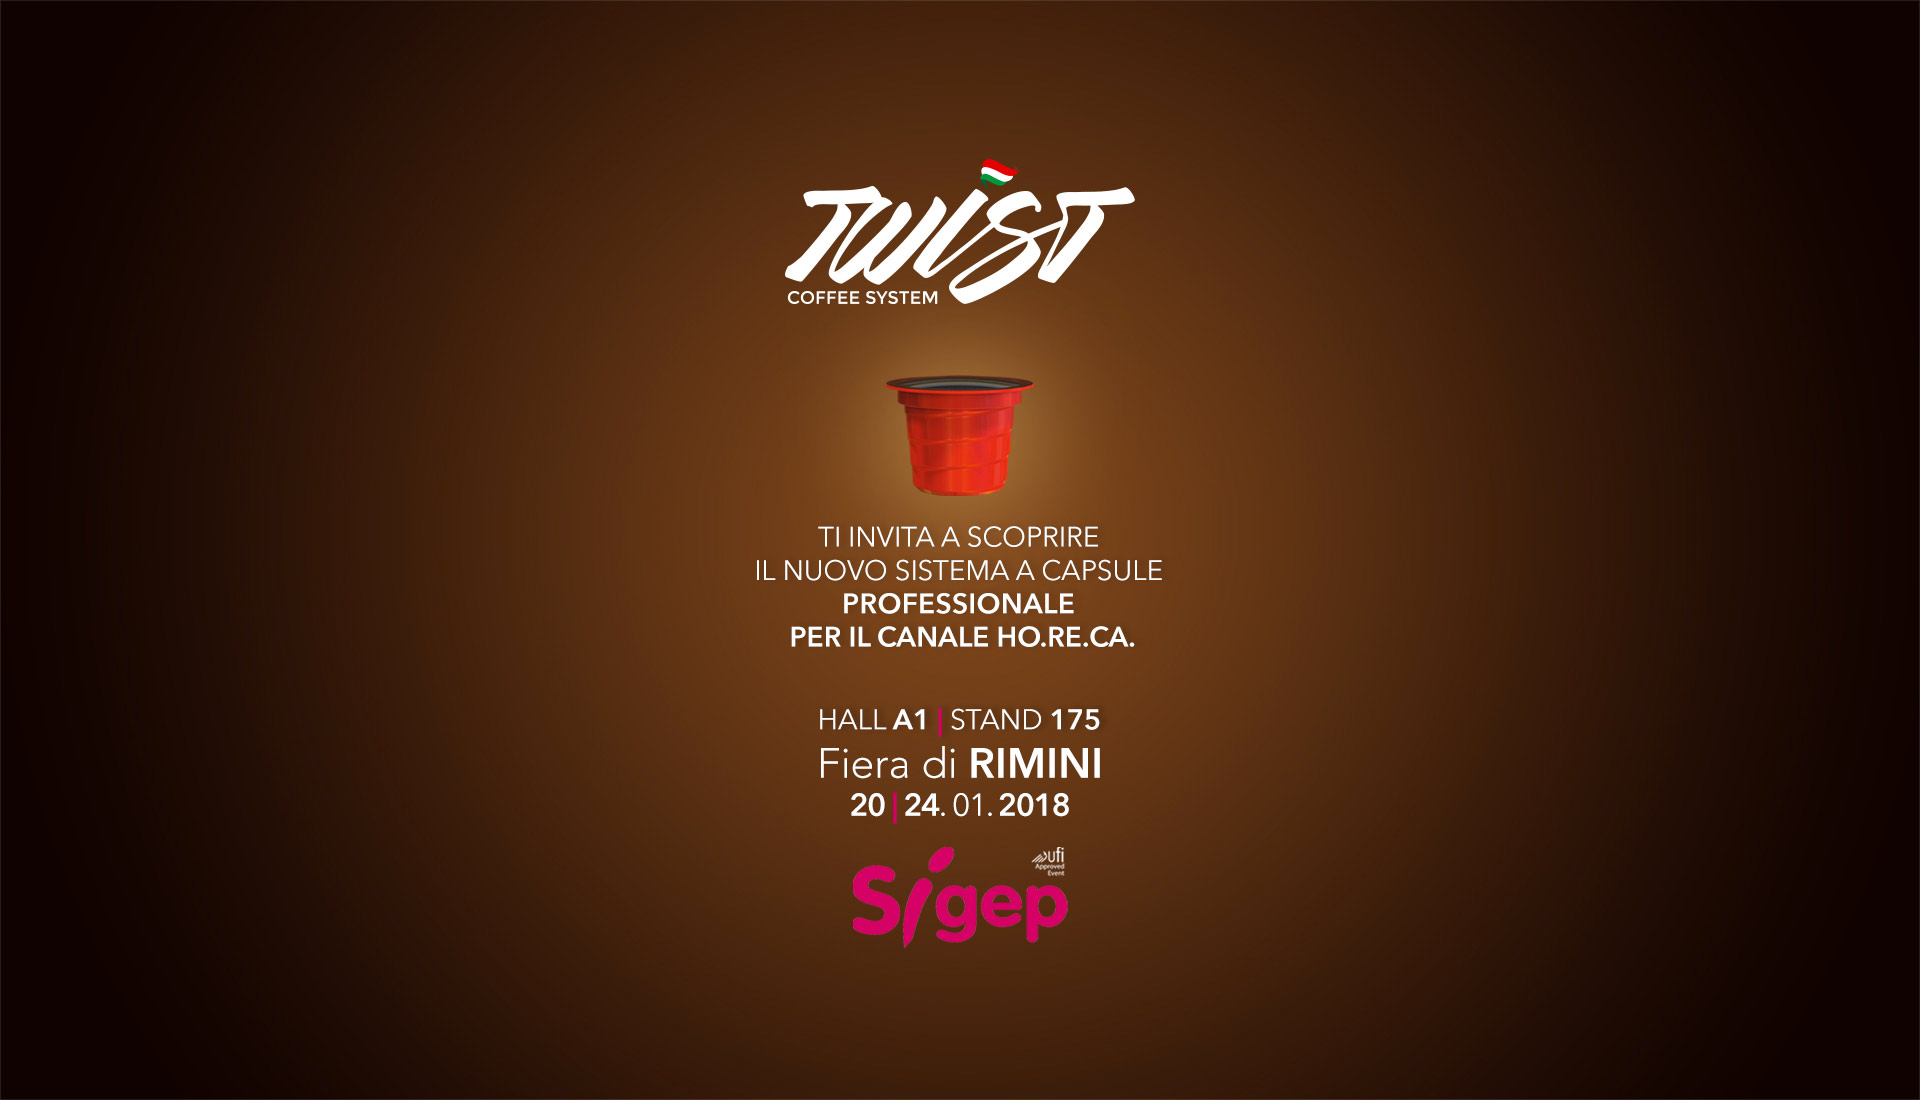 Twist coffee system